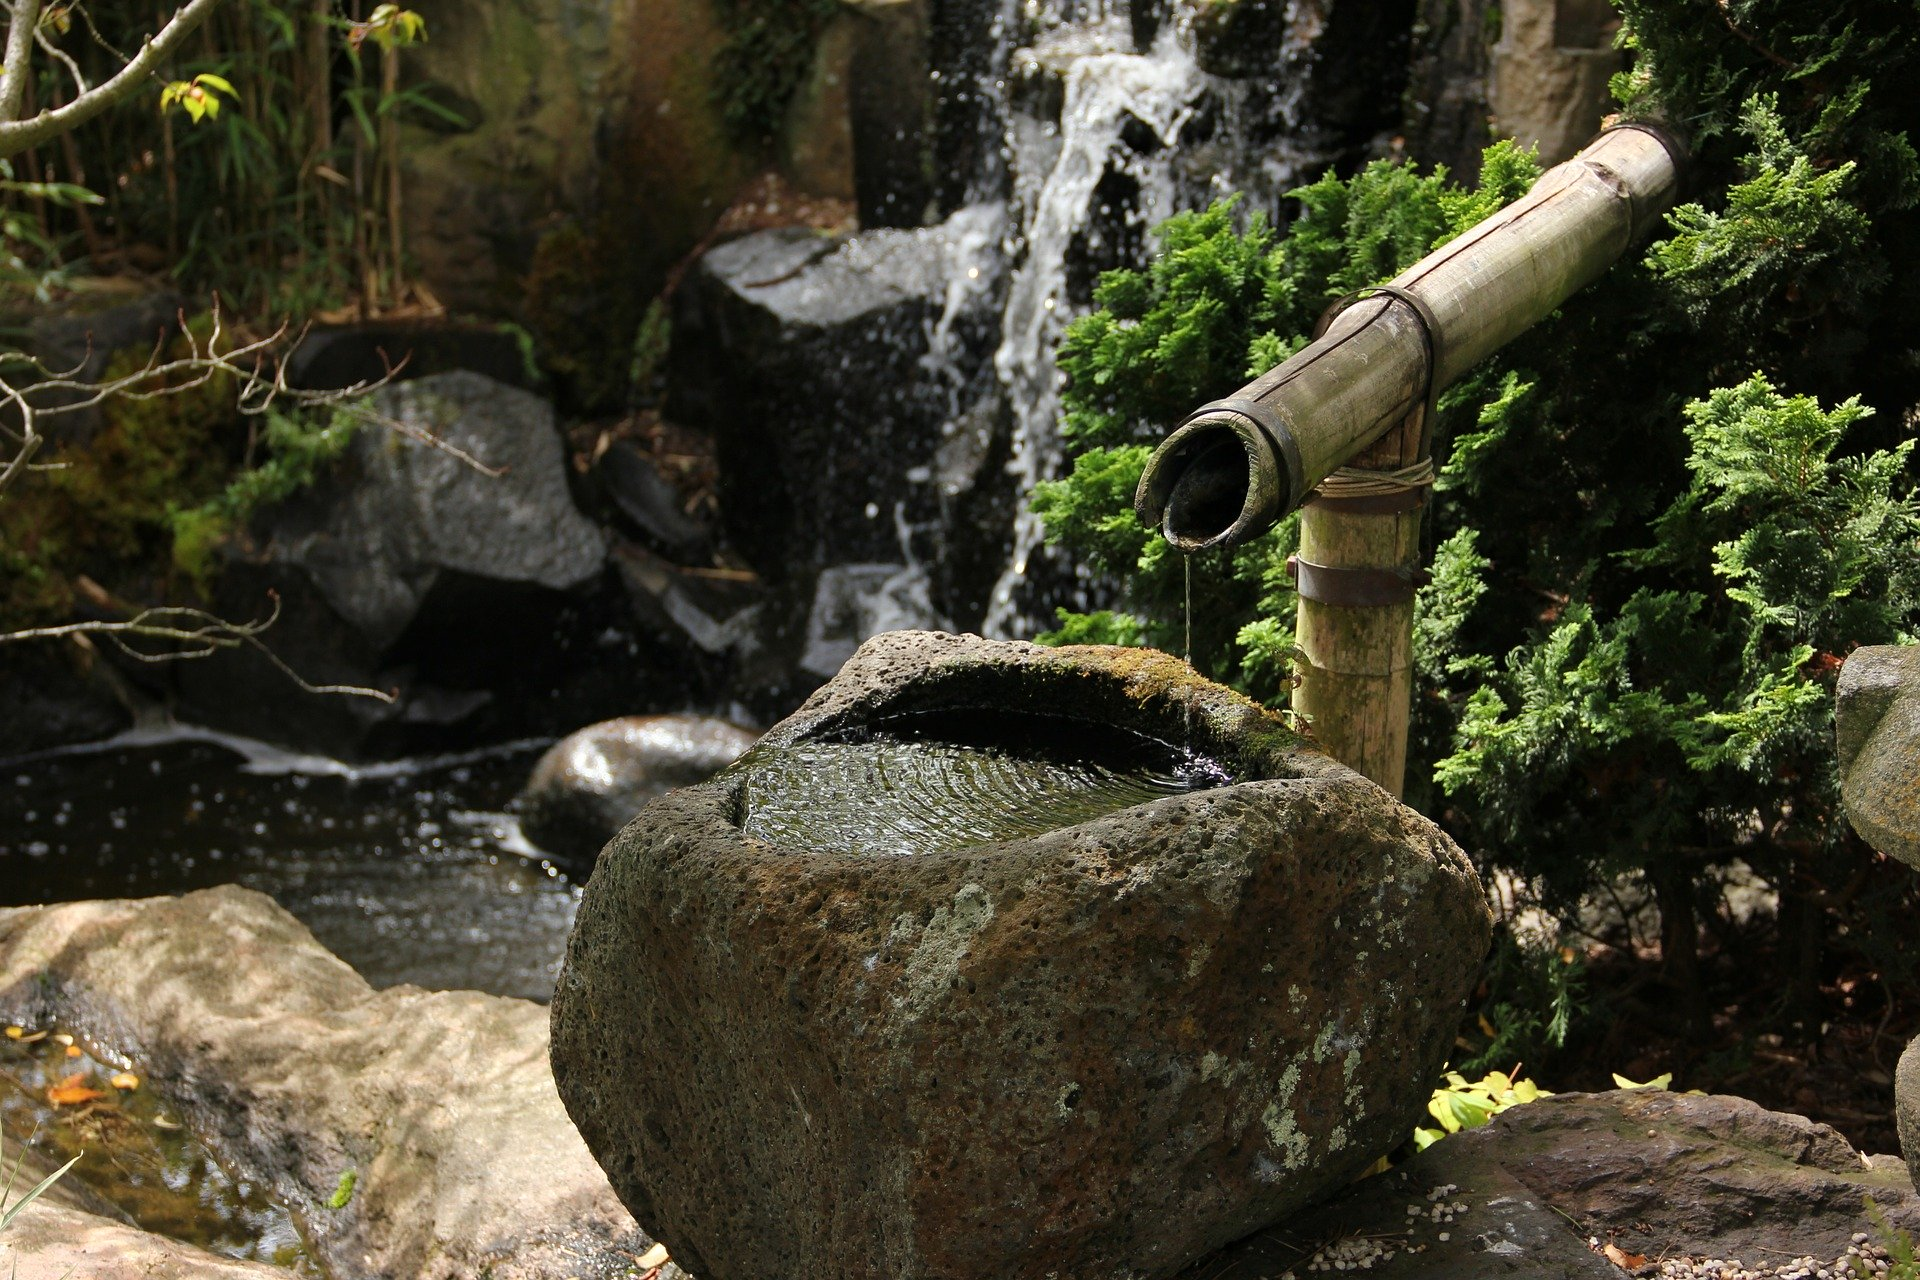 Traditional hand-washing basin made out of stone and a bamboo pipe.